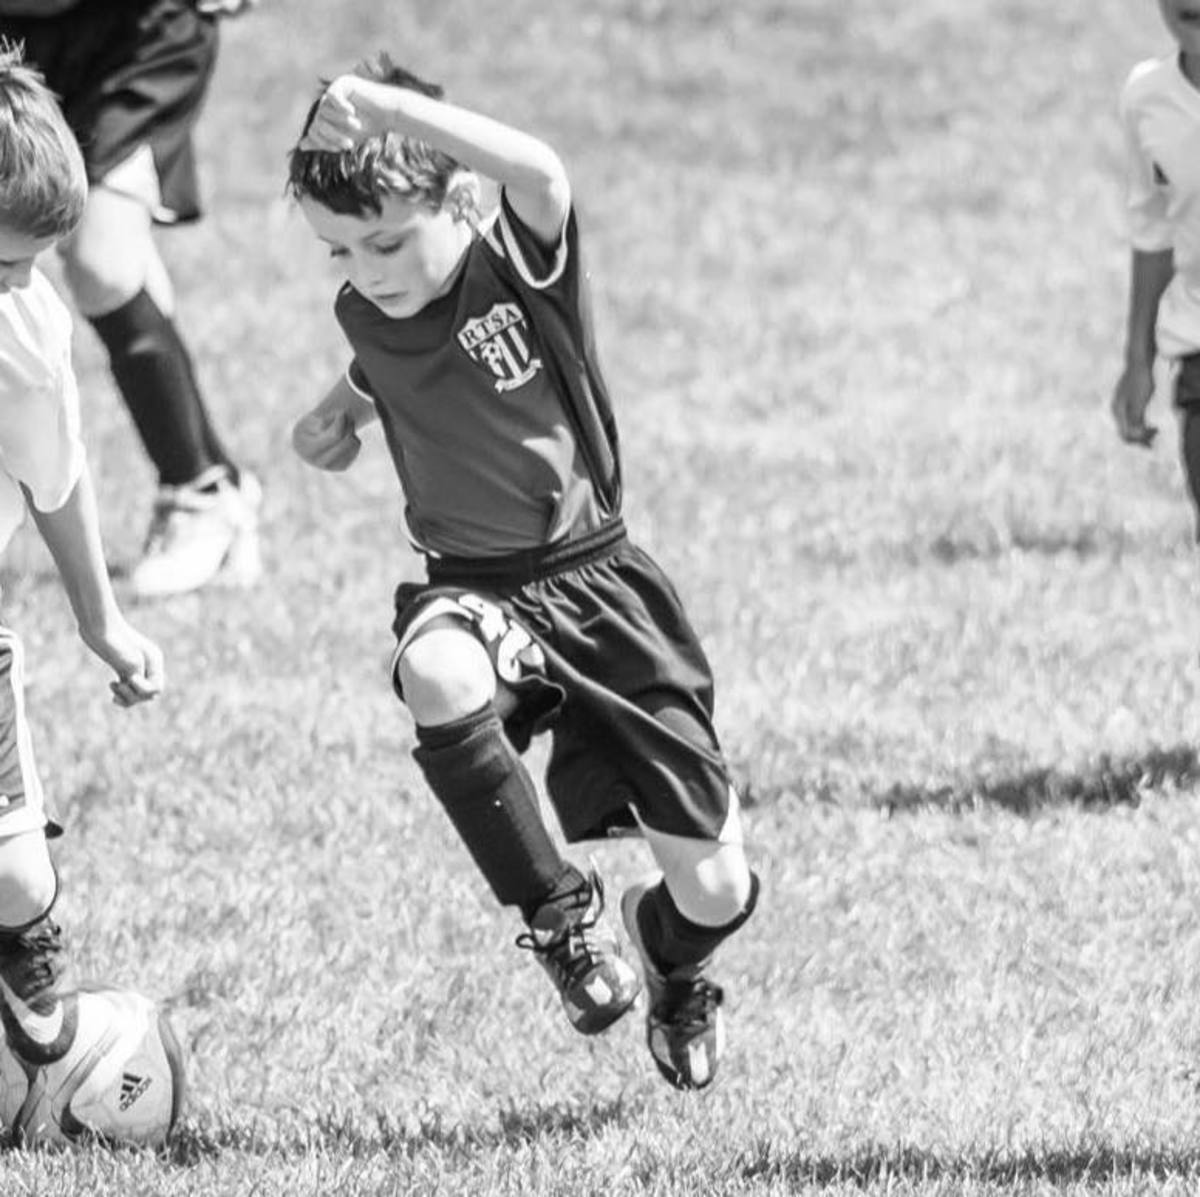 It is important to teach children soccer skills and strategies that they can utilize to develop as players.